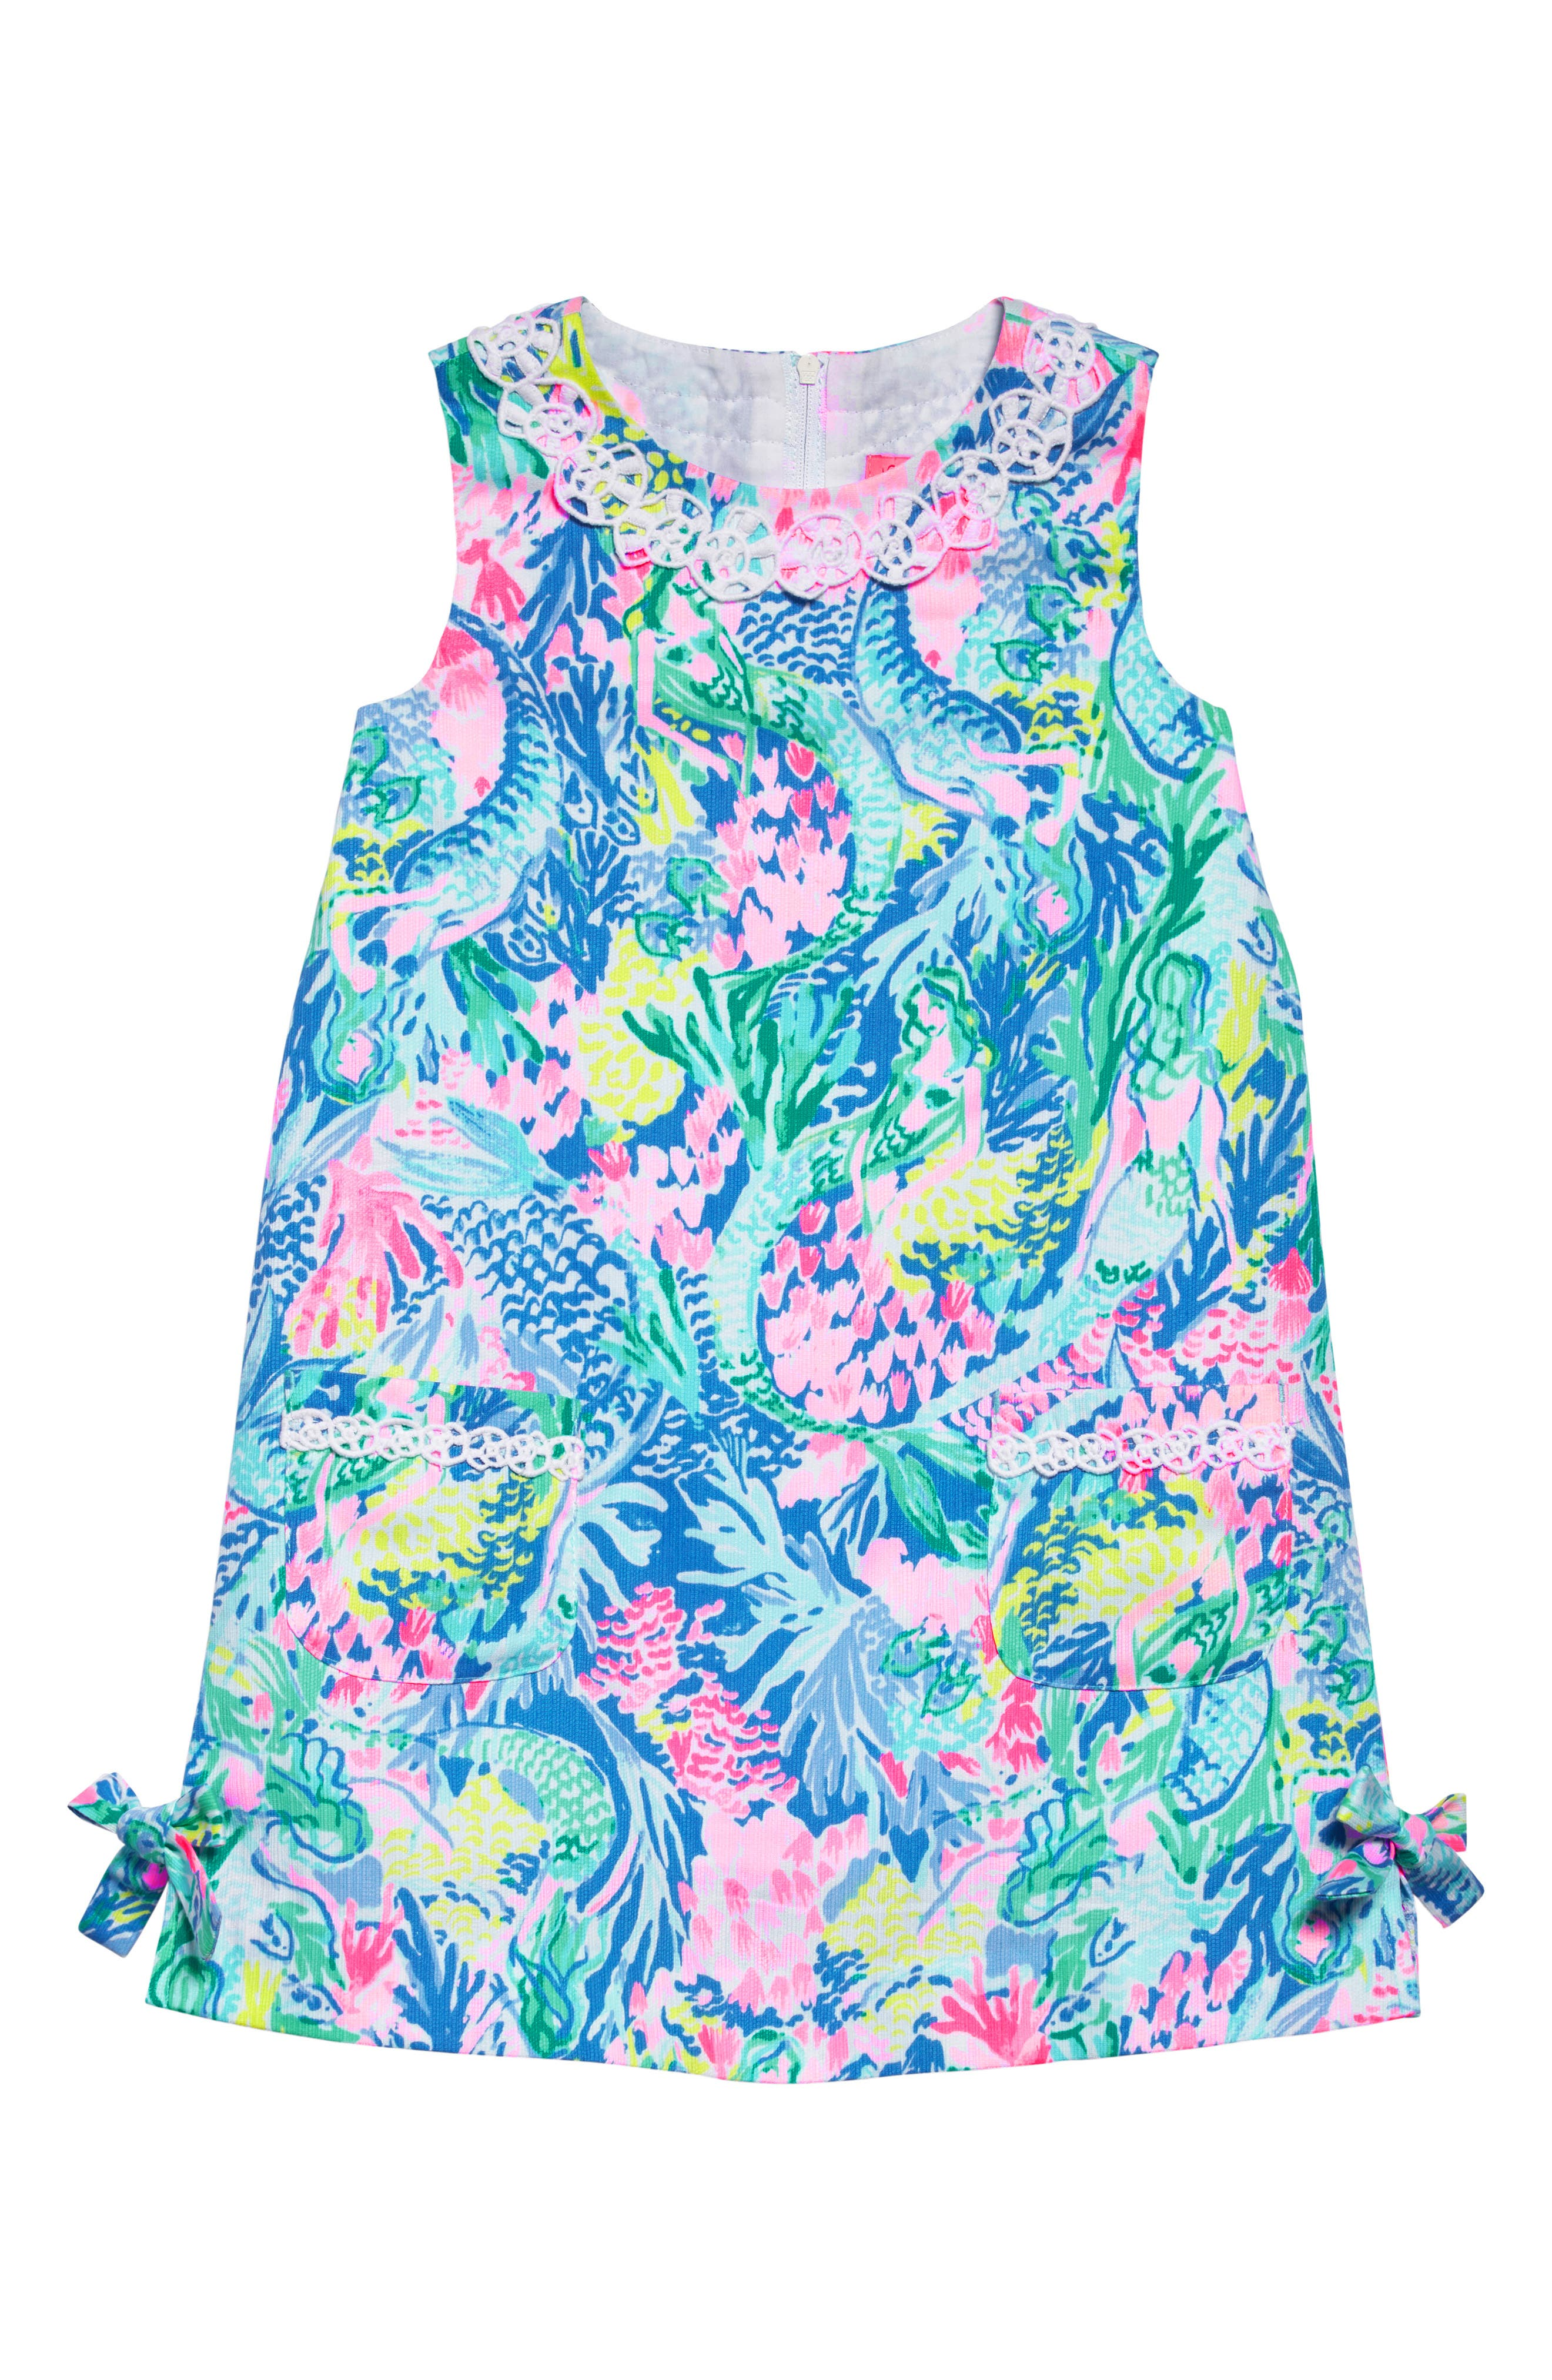 Little Lilly Classic Shift Dress,                         Main,                         color, Multi Mermaids Cove